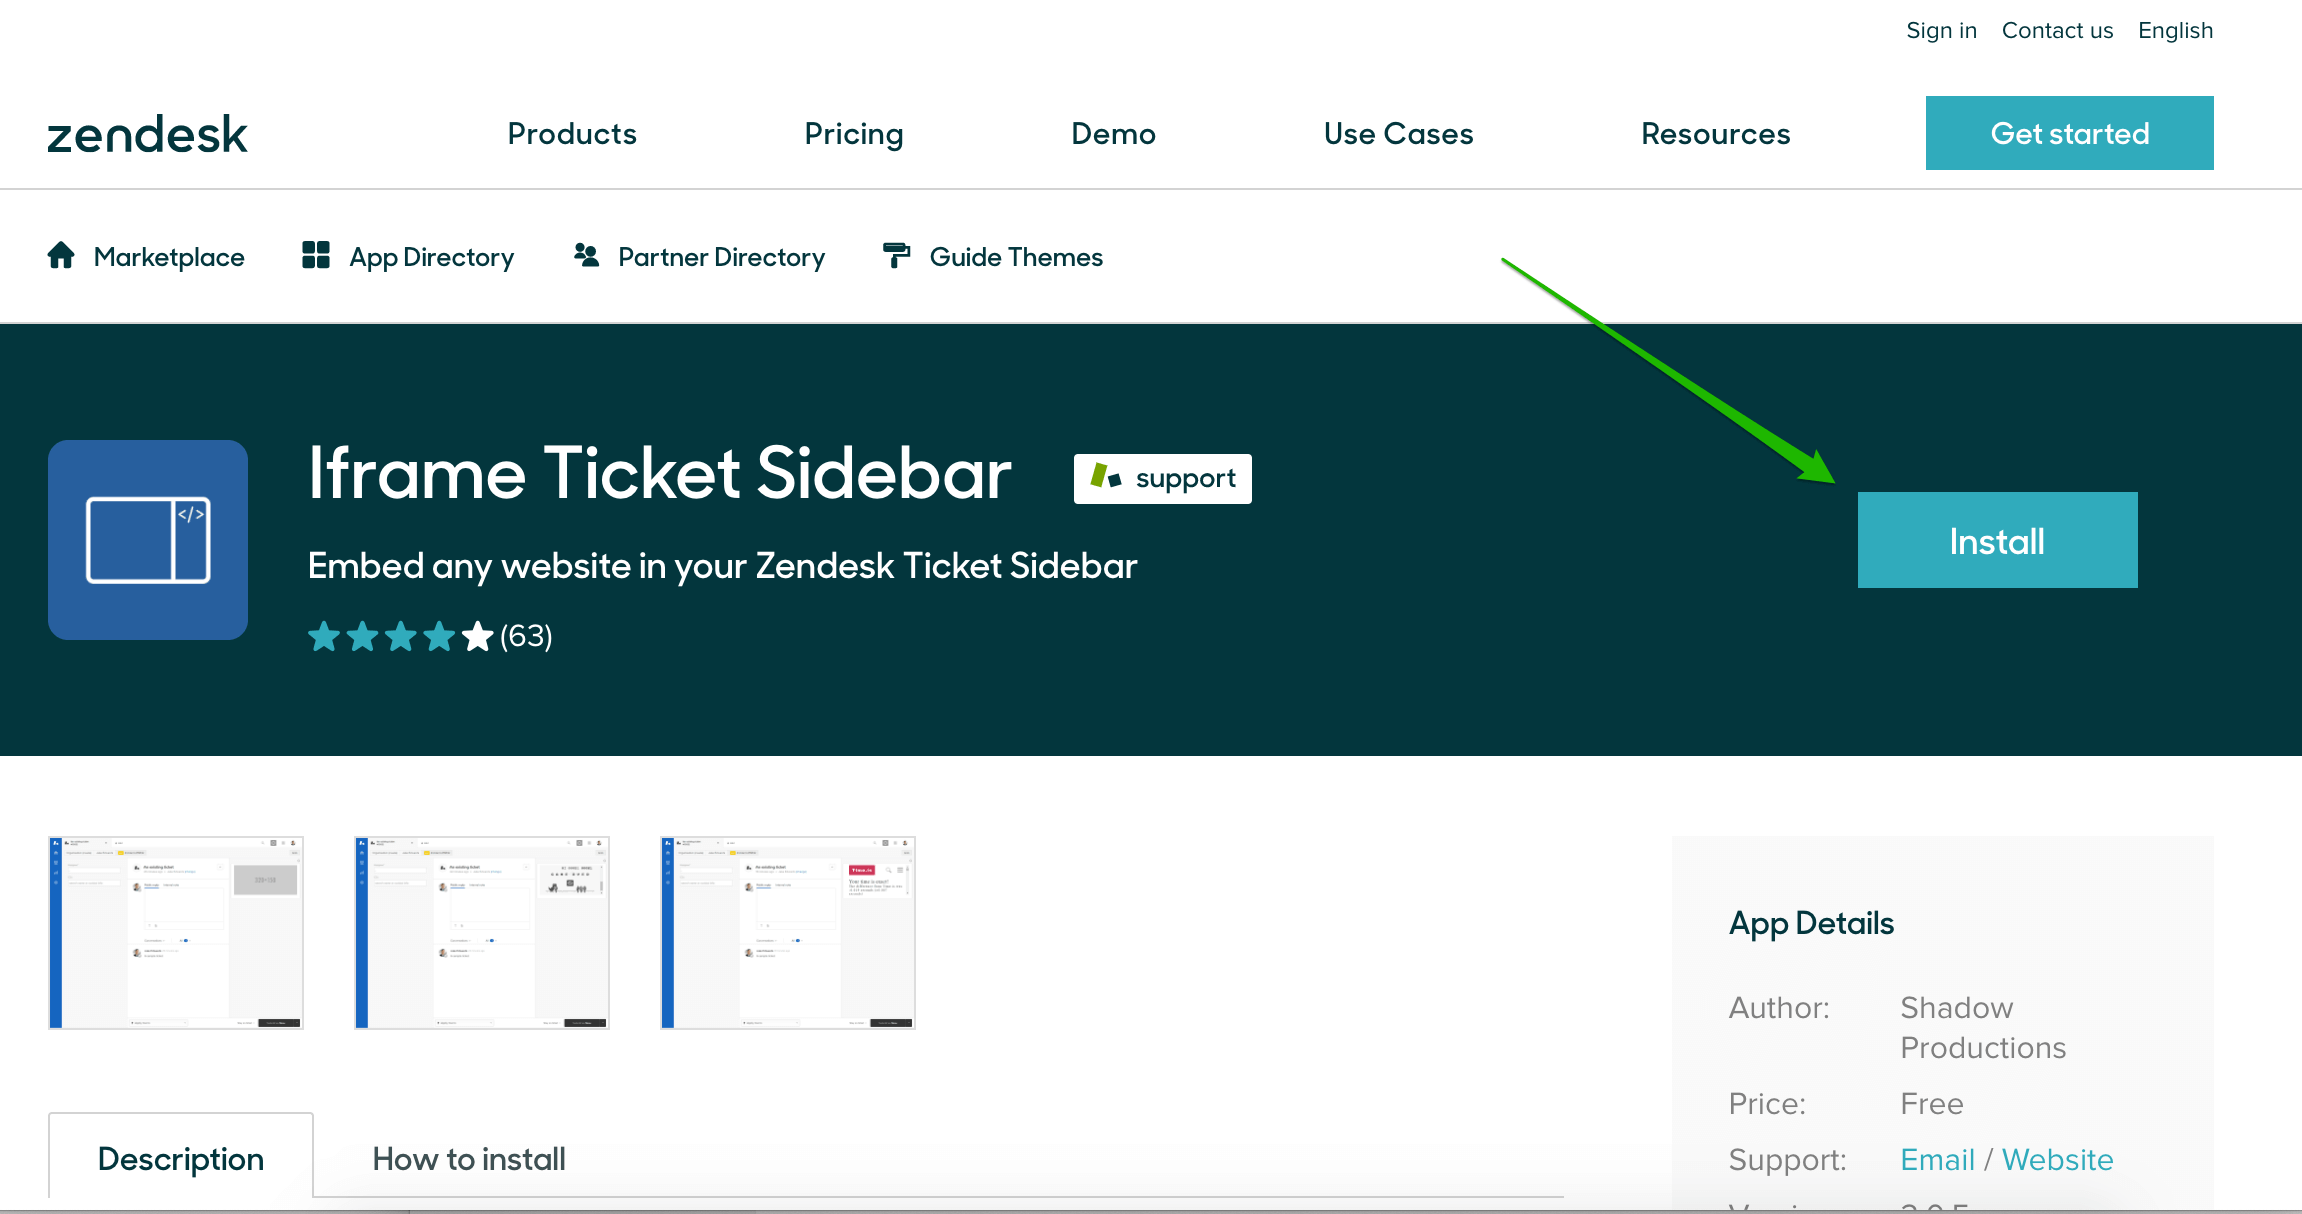 Iframe Ticket Sidebar App for Zendesk Support